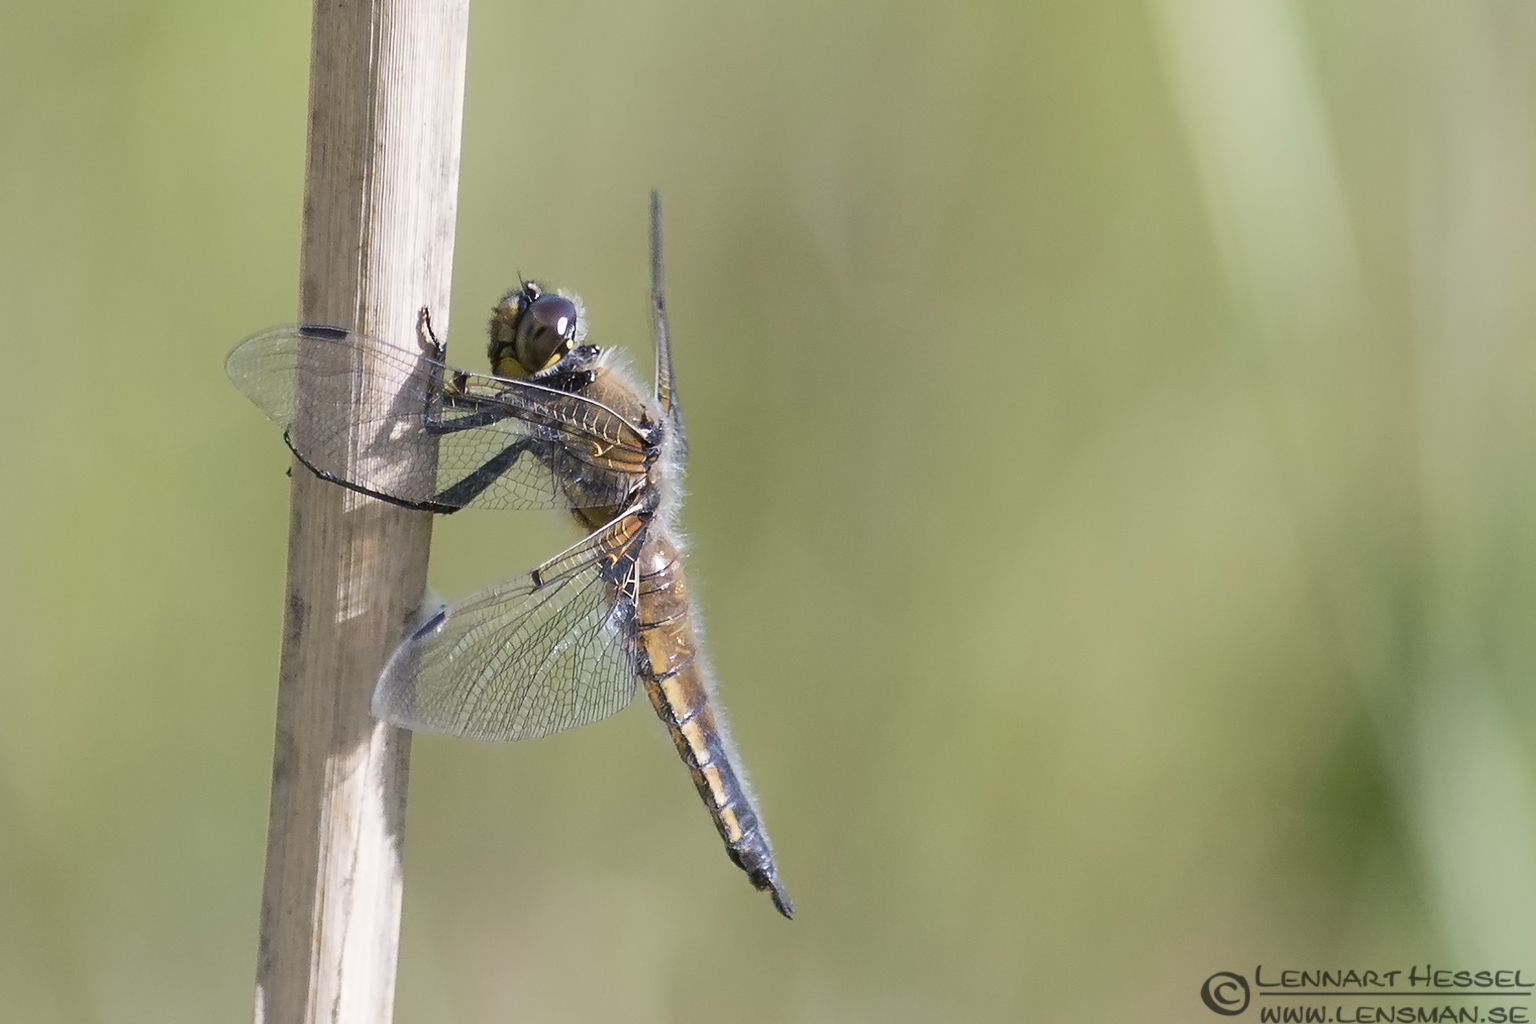 Four-spotted Chaser Dragonflies